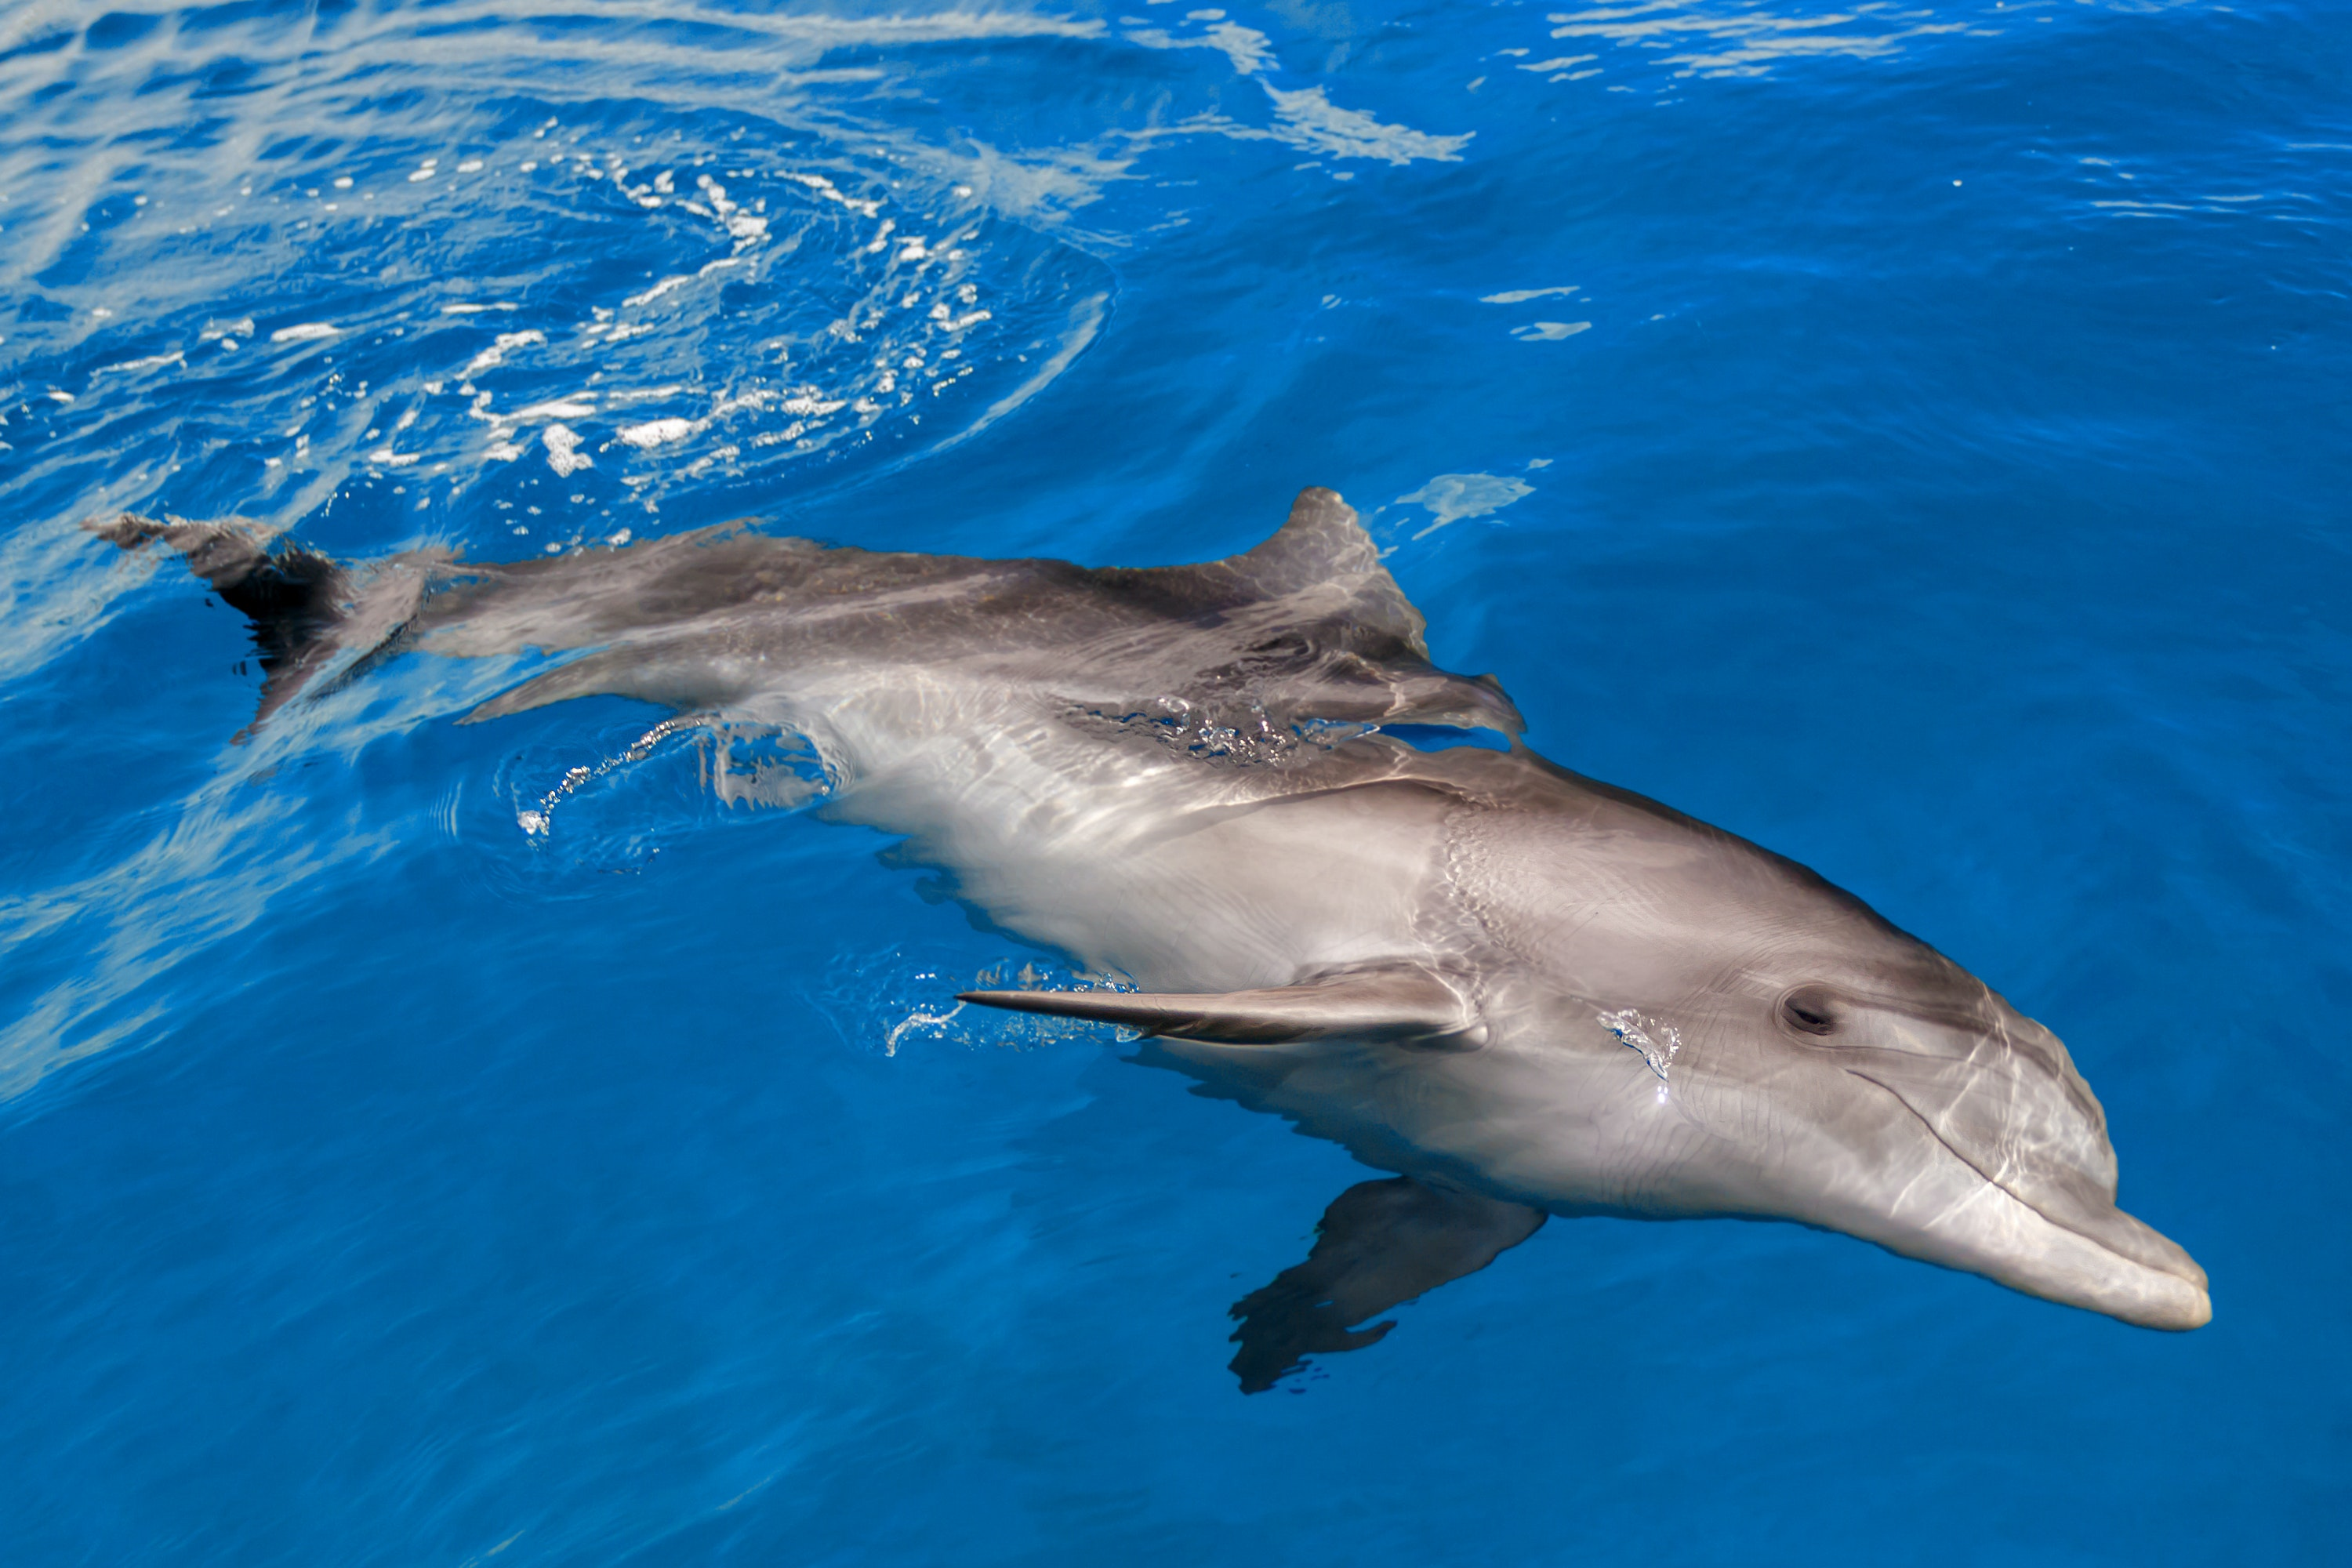 A rare glimpse into the world of the Red Sea's dolphins ...